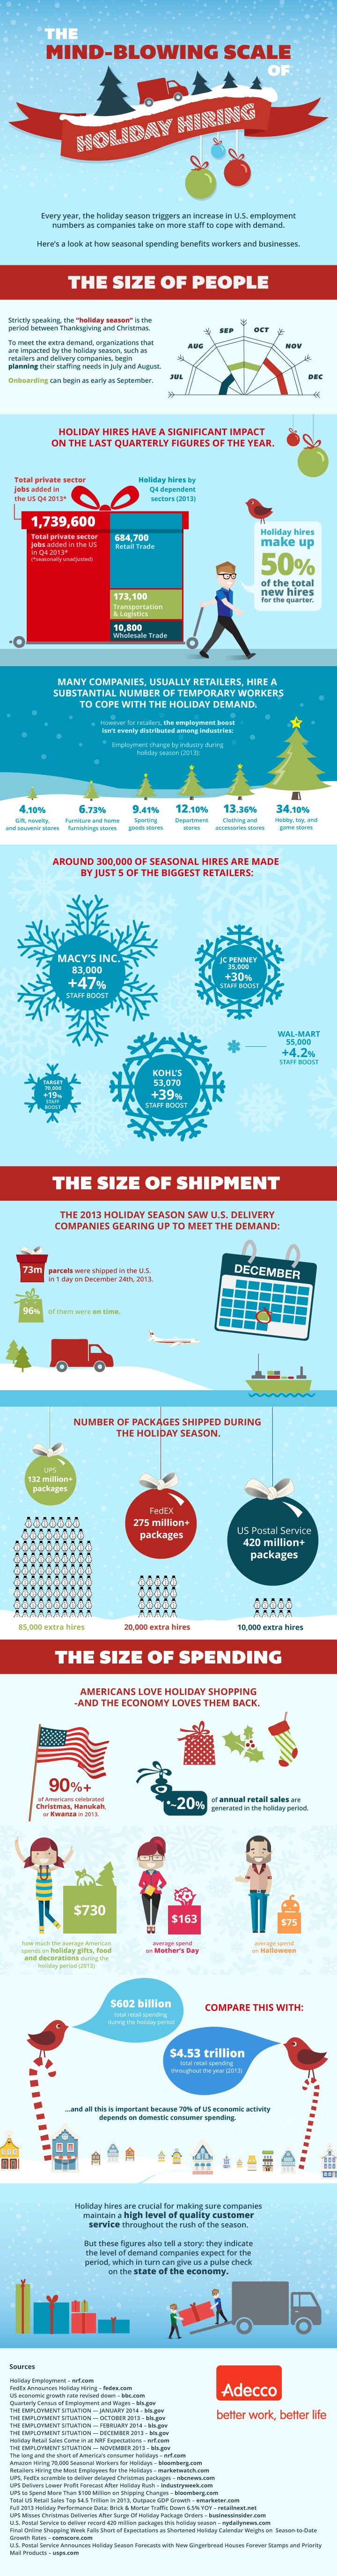 The importance of holiday hiring to large retail companies